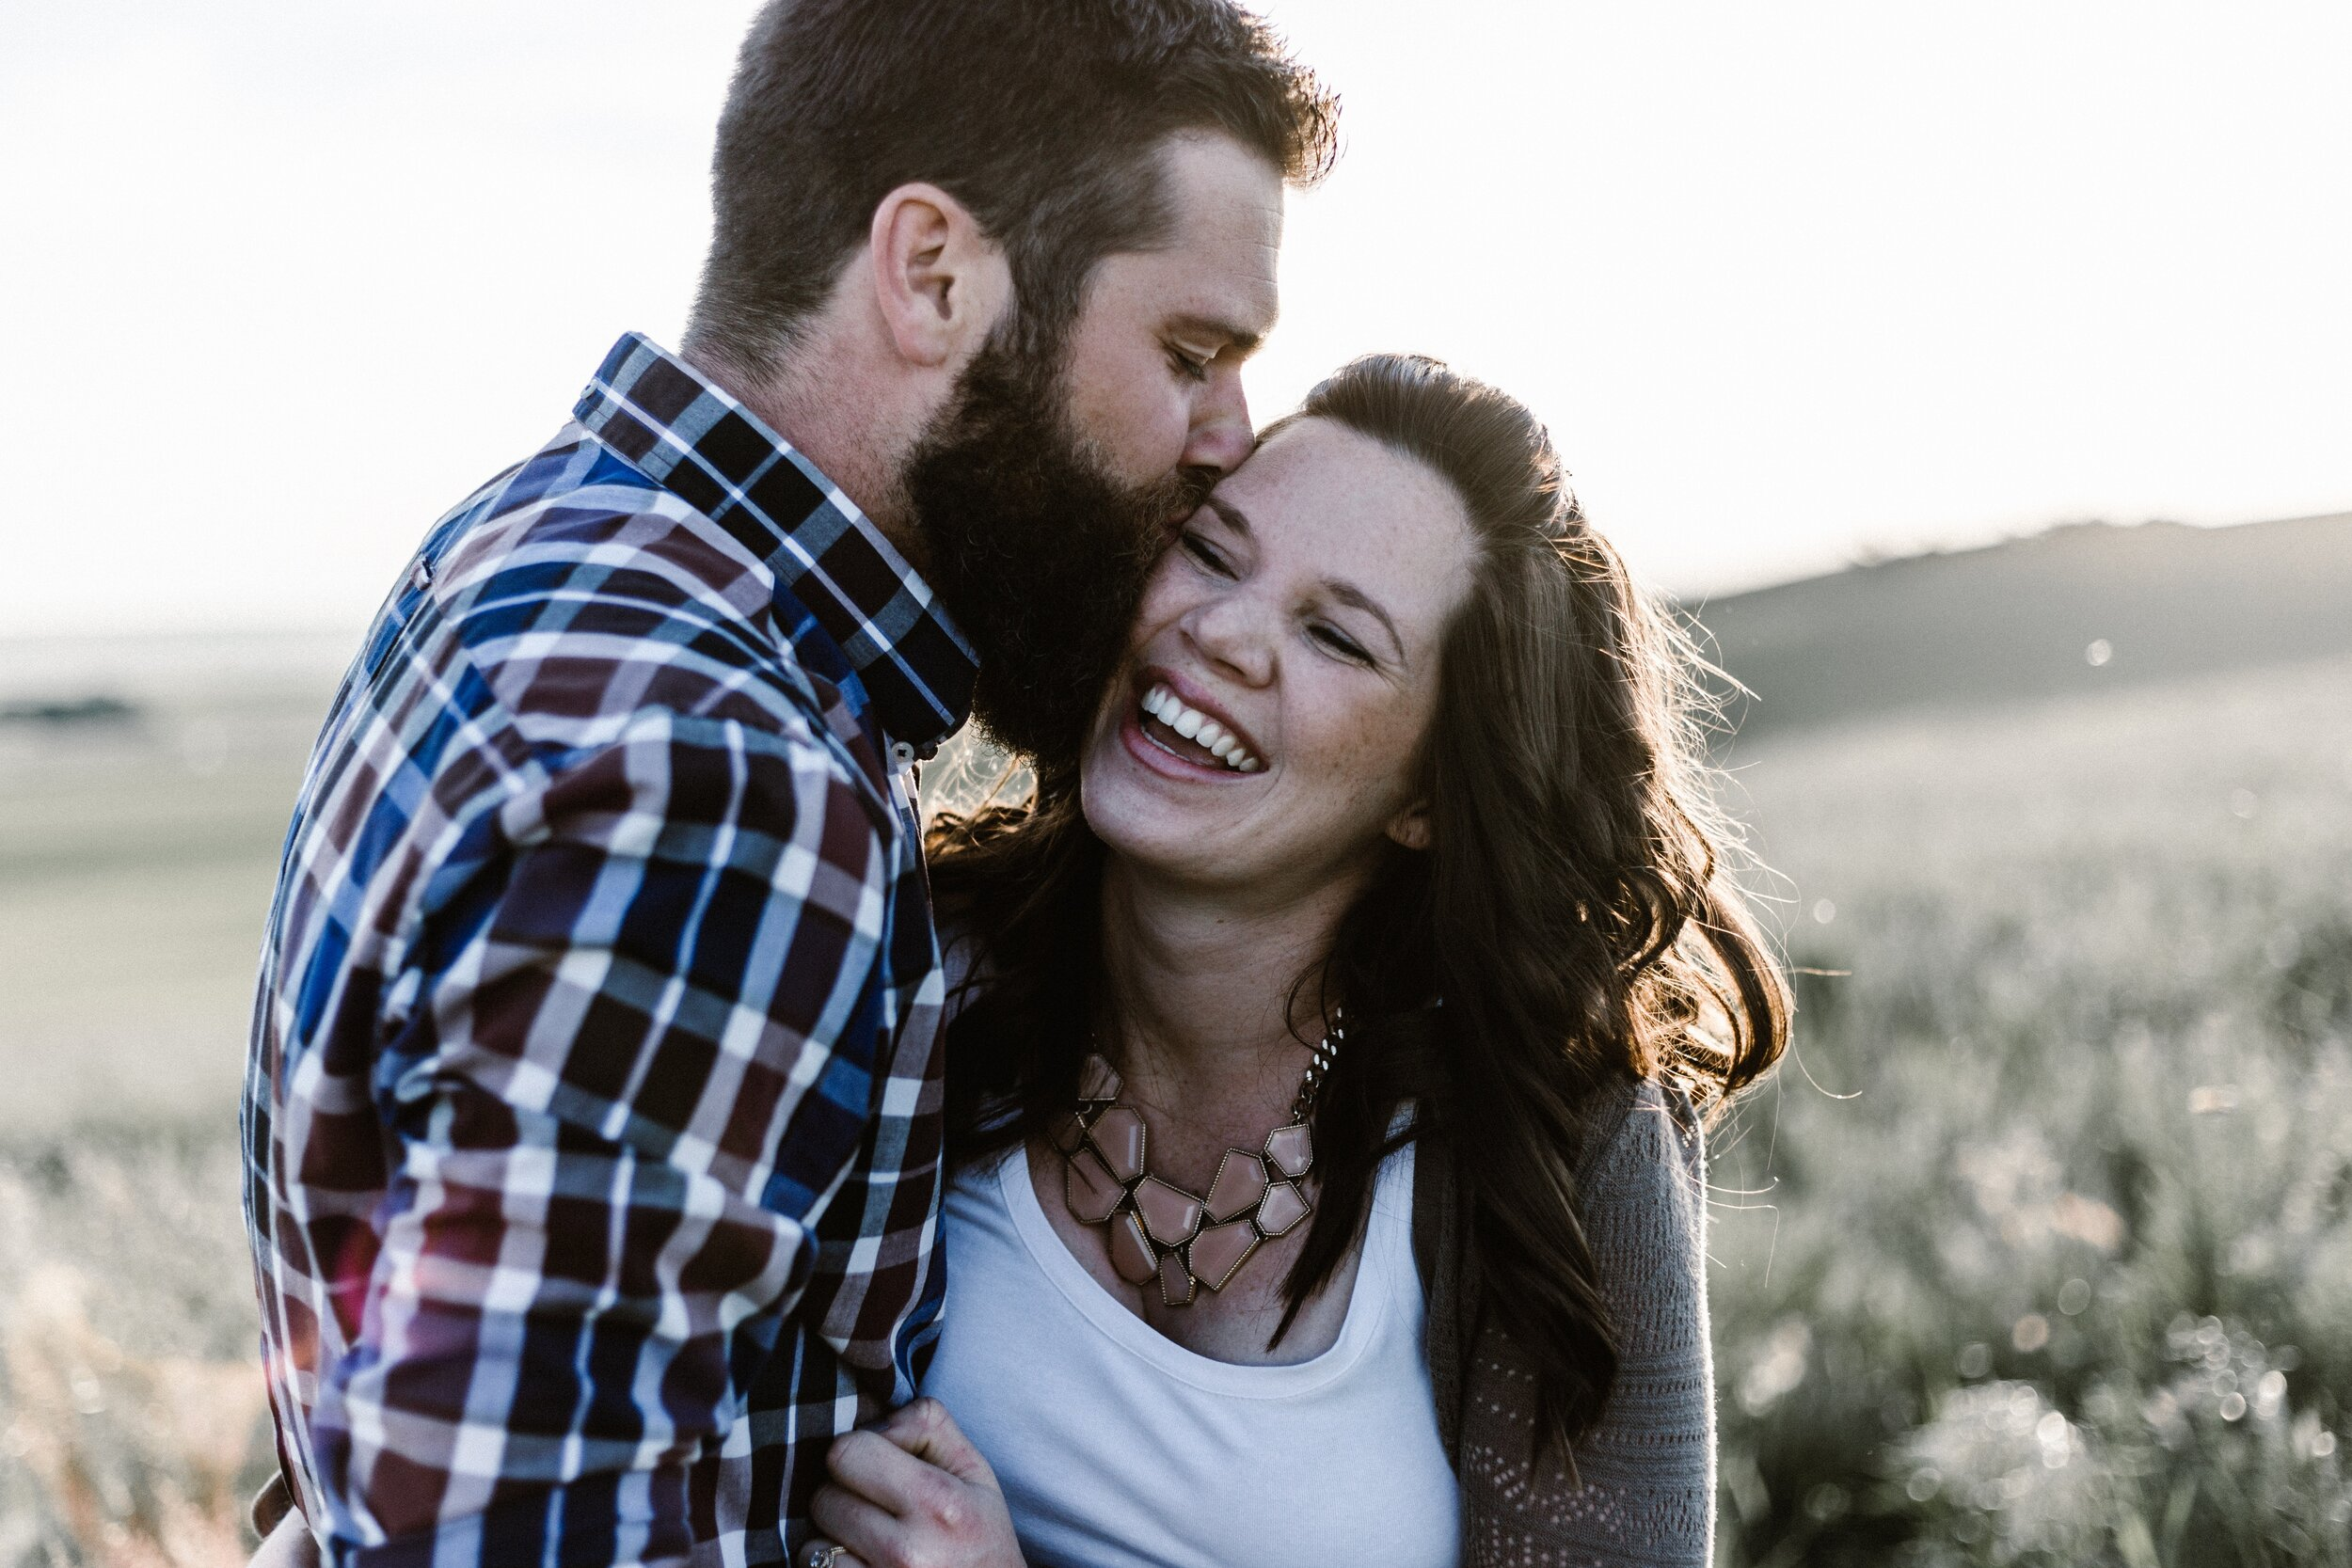 beard_smile_couple_in_field_priscilla-du-preez-318422-unsplash.jpg